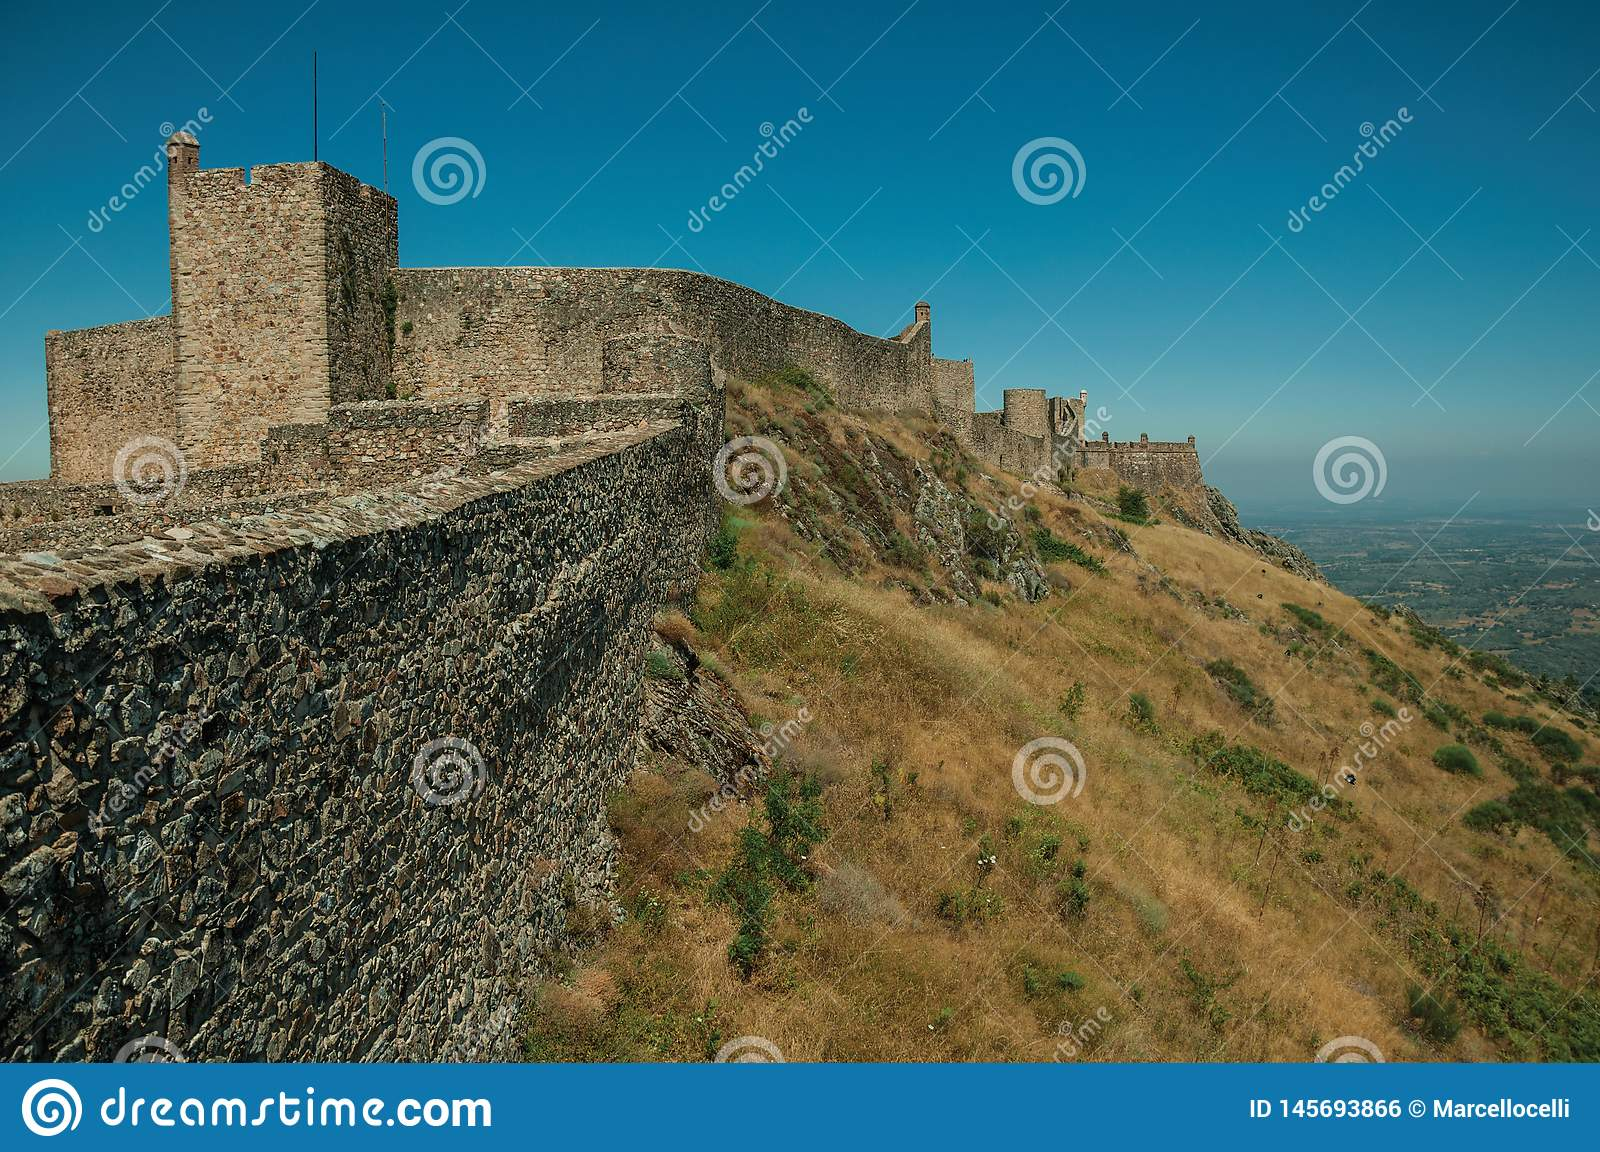 Walls and watchtowers over rocky ridge at the Marvao Castle